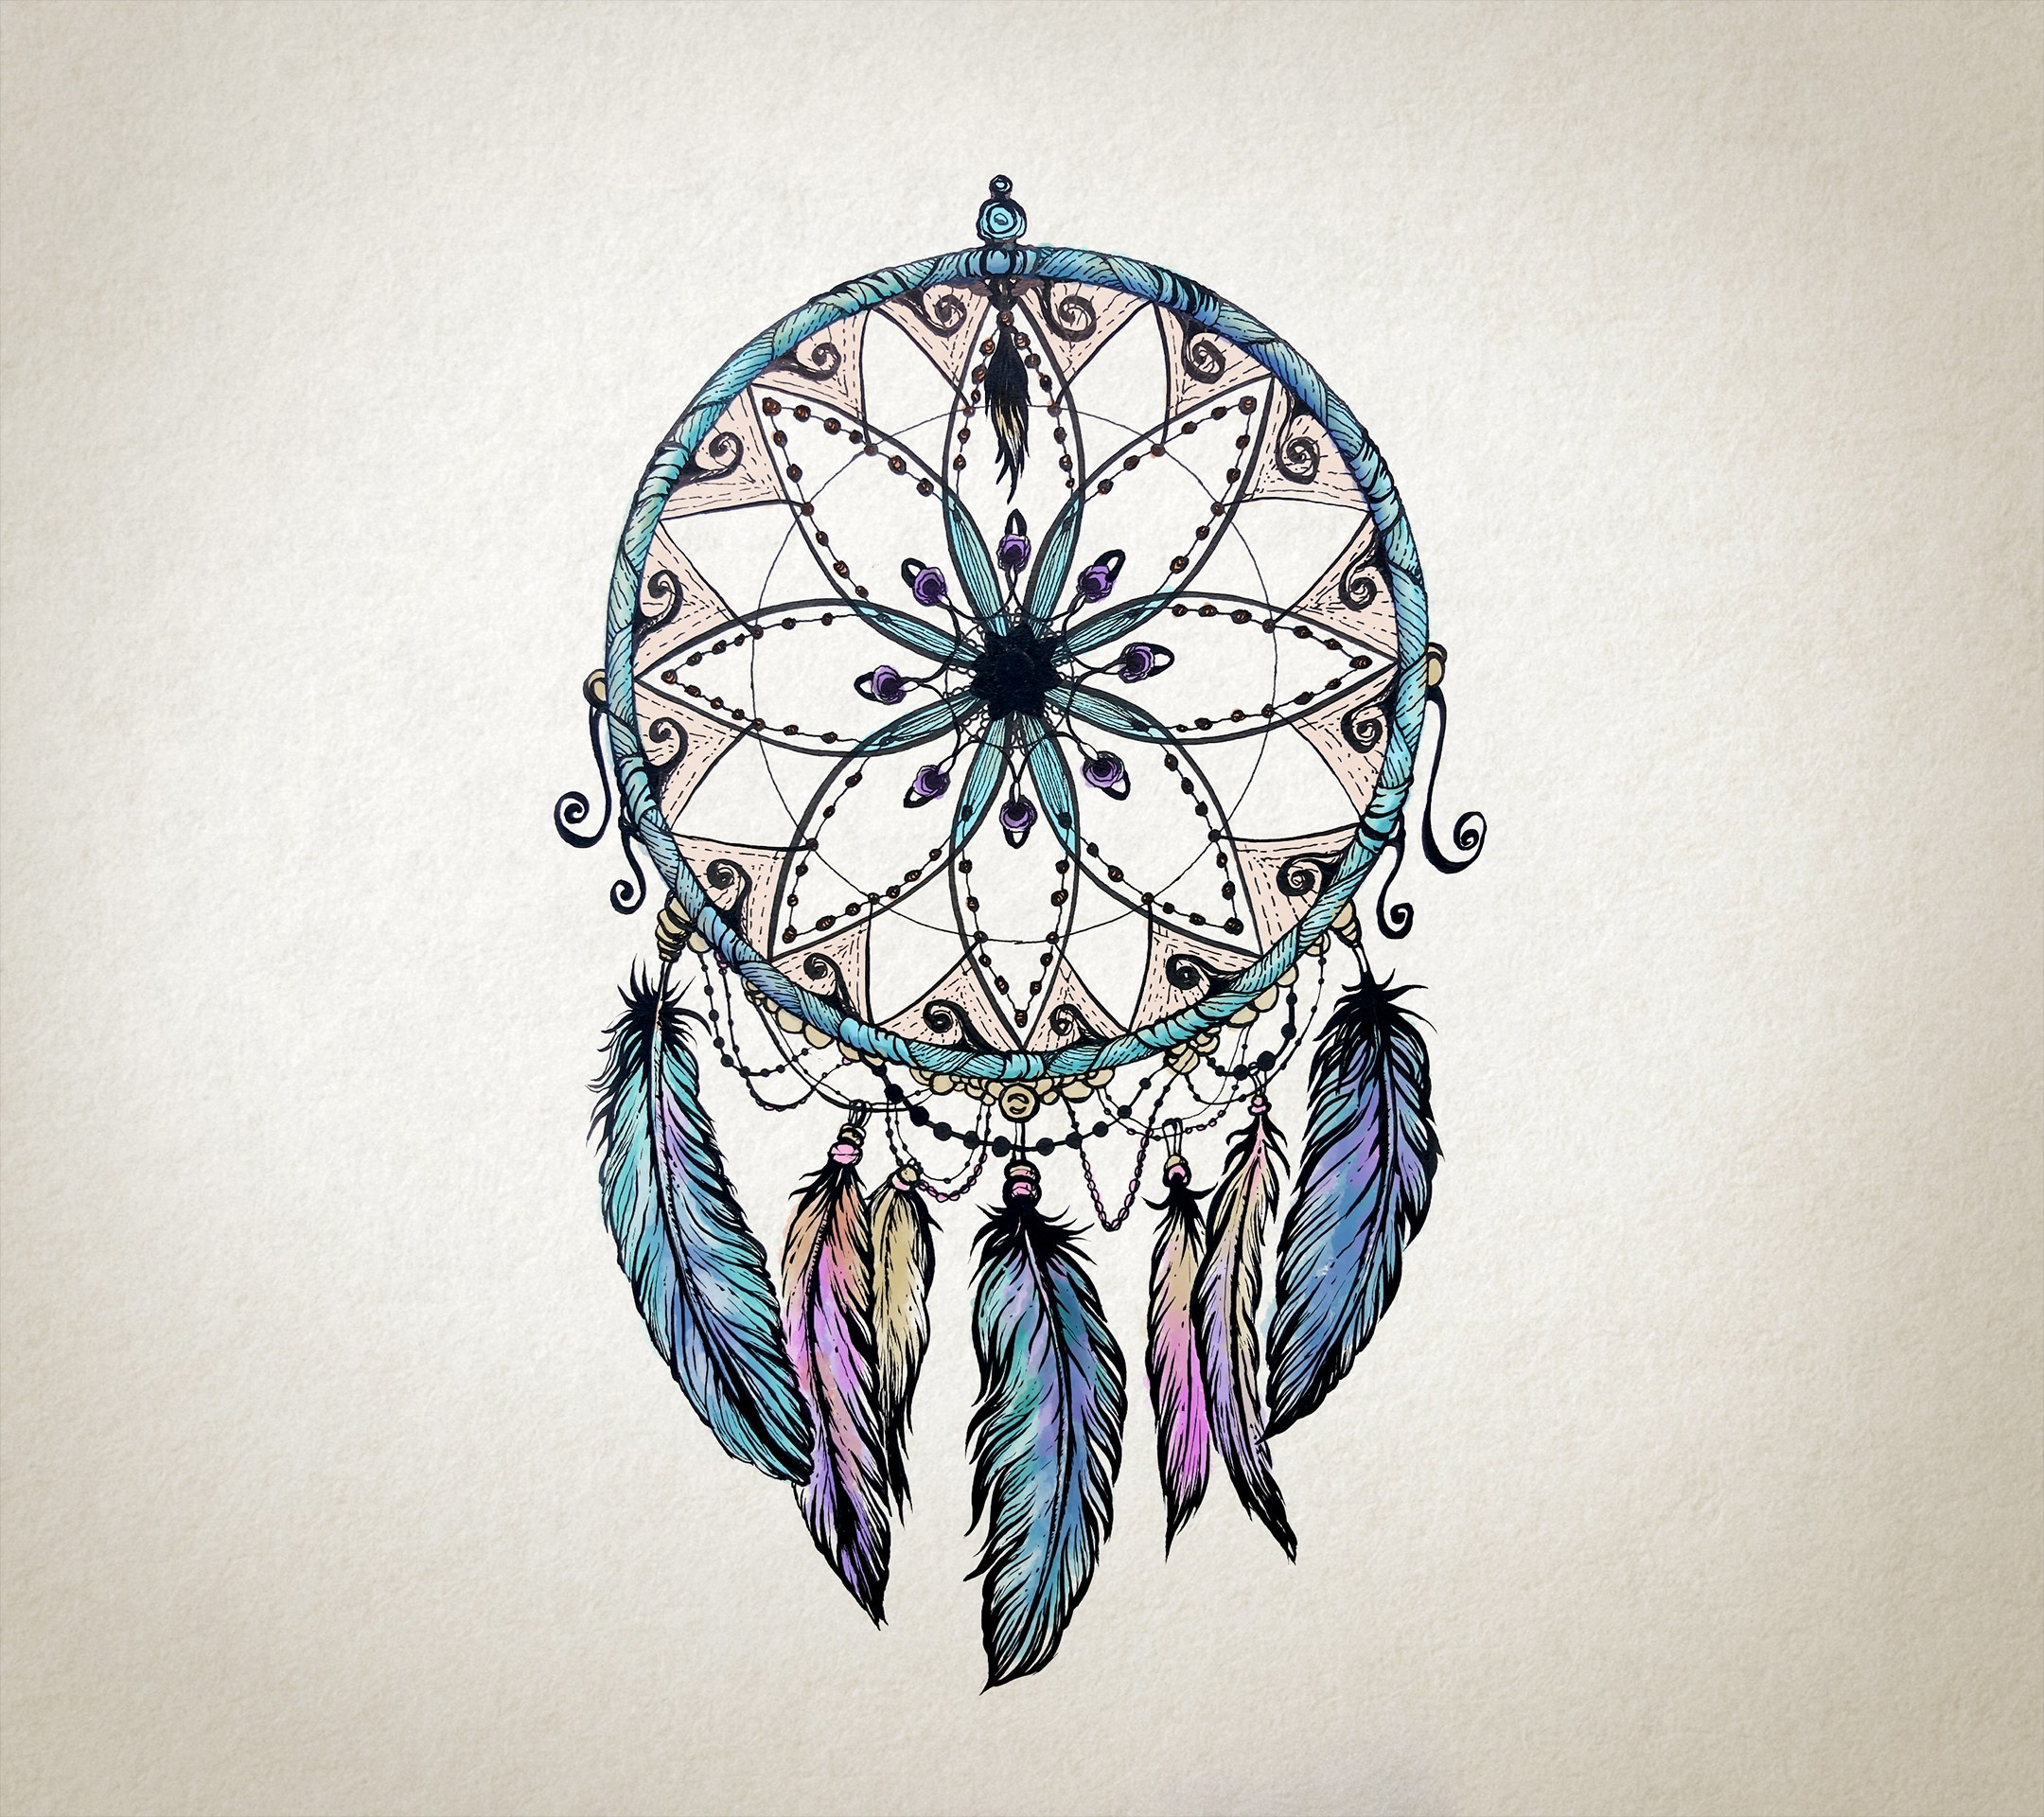 Dream catcher iphone wallpapers 76 images 2400x1350 wallpapers for cute dreamcatcher wallpaper voltagebd Gallery